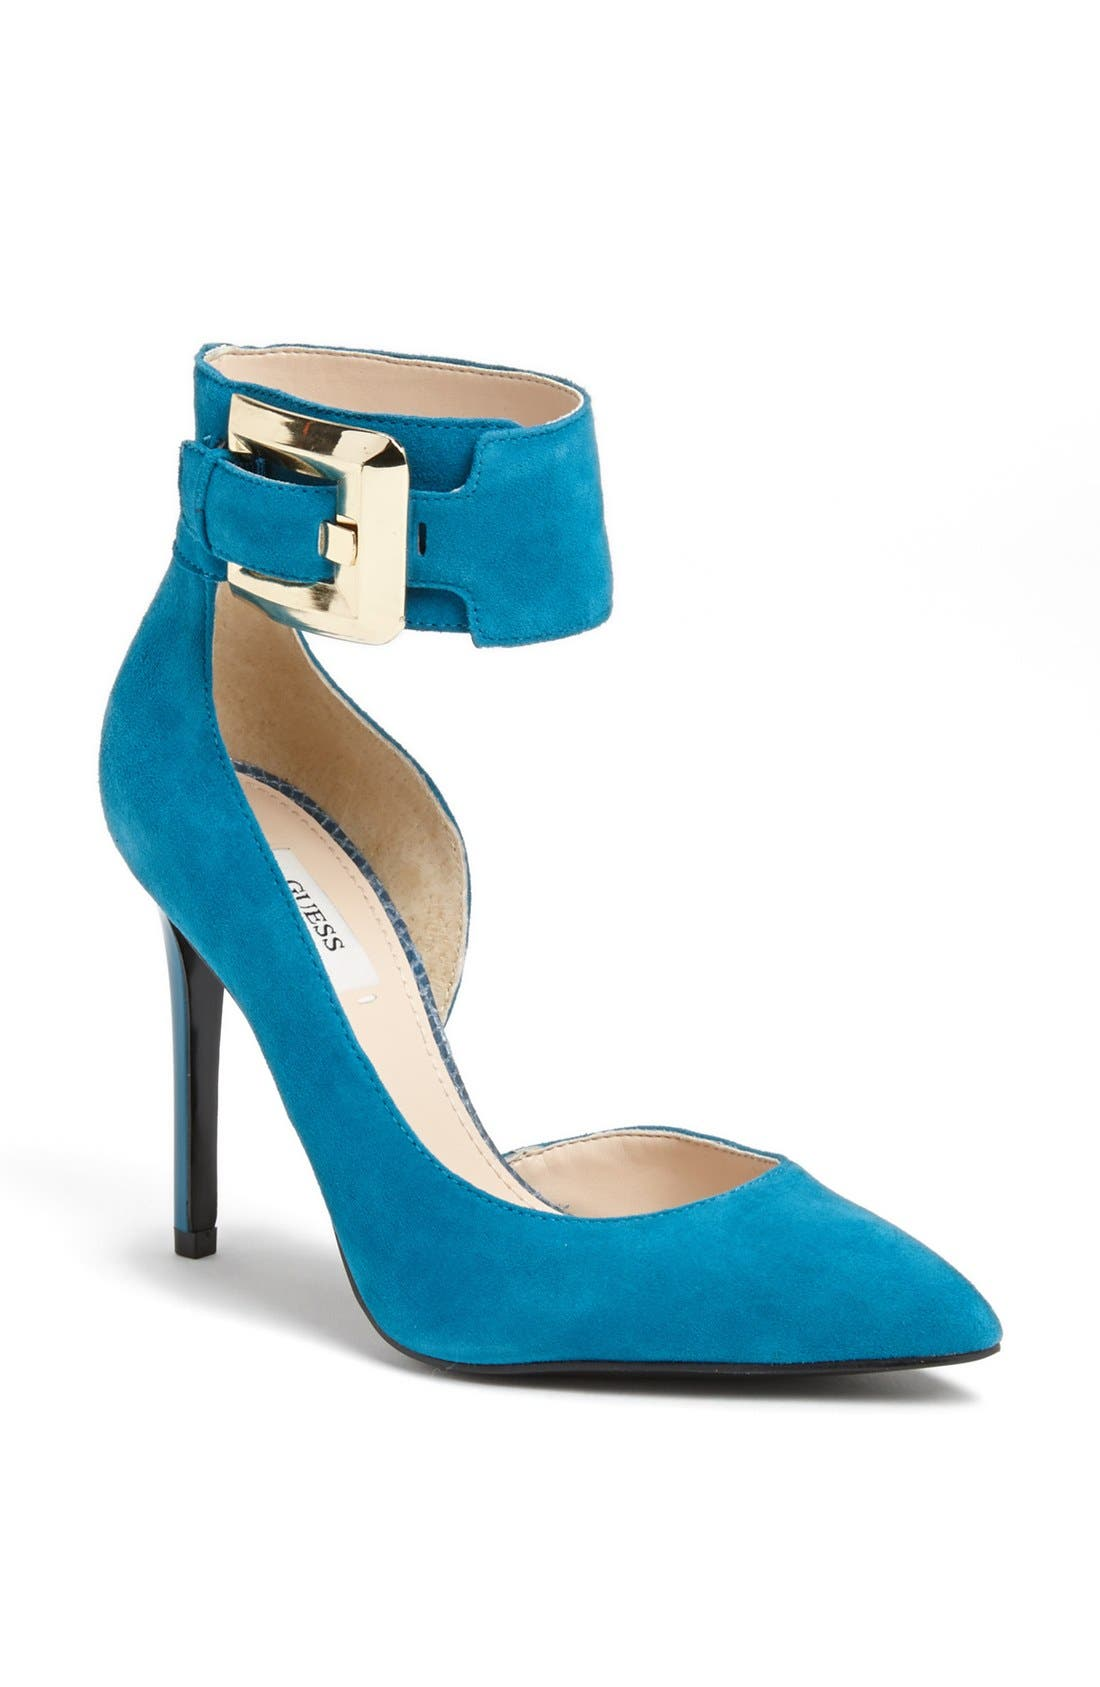 Main Image - GUESS 'Adal' Ankle Strap d'Orsay Pump